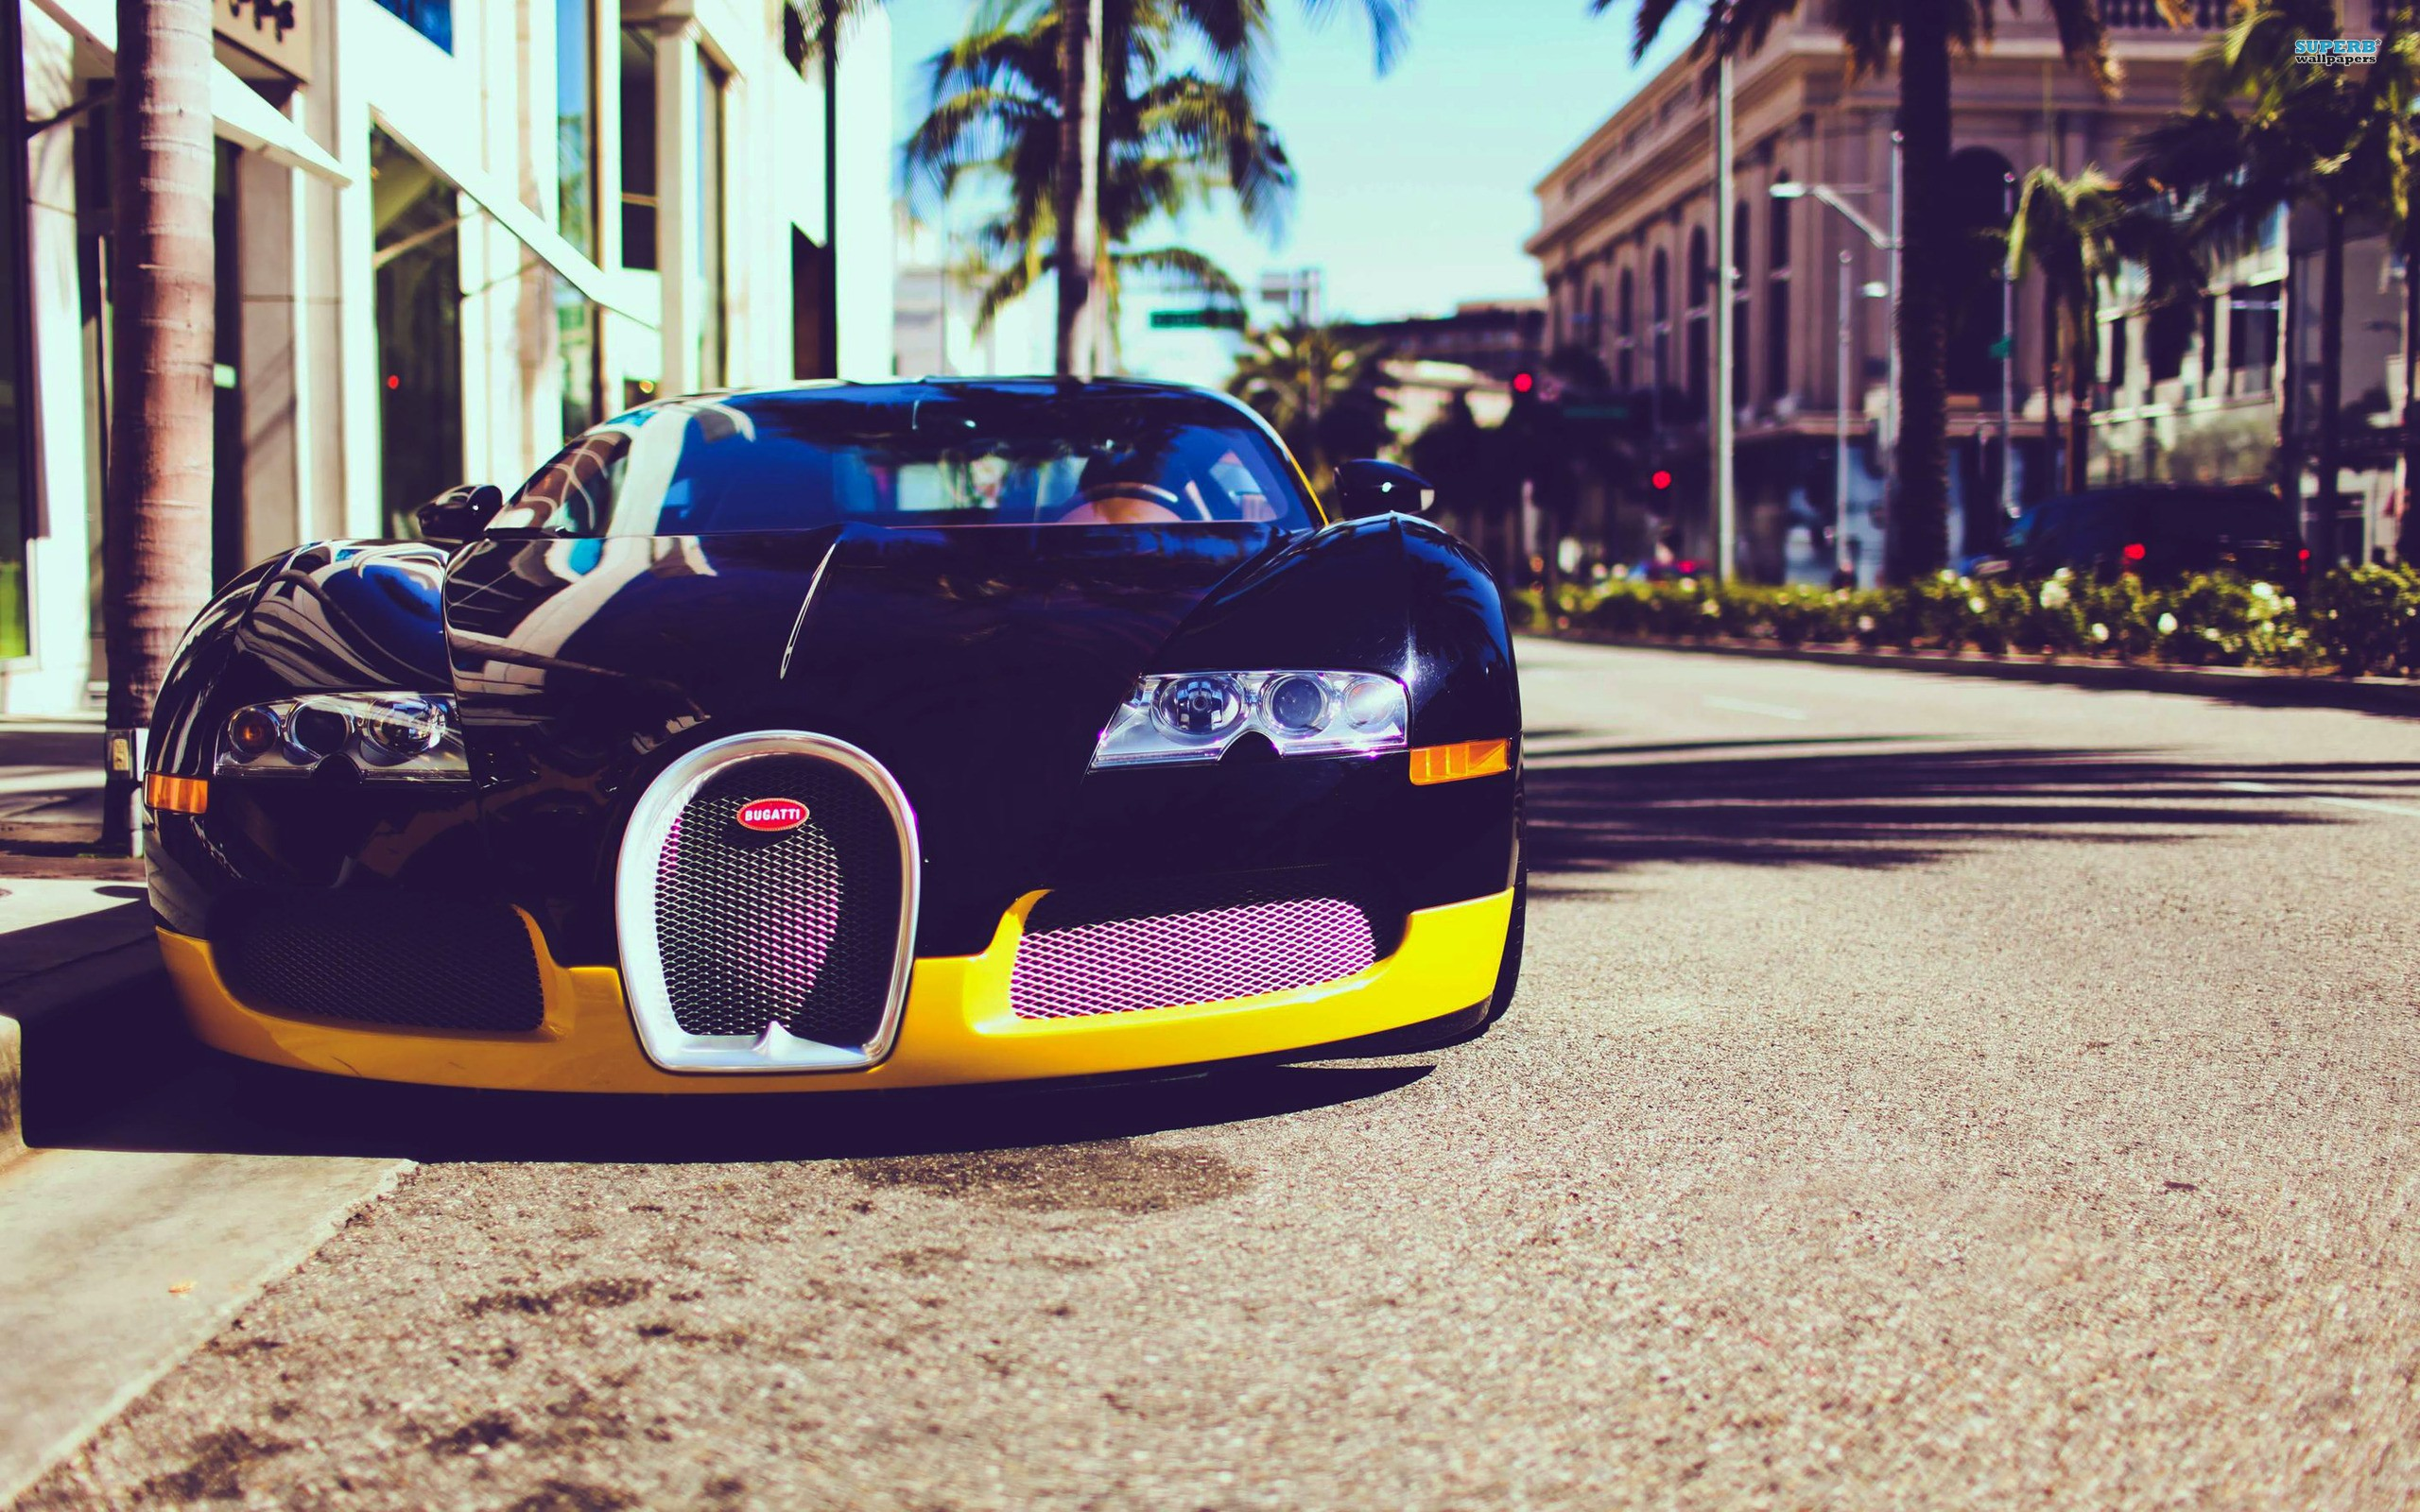 Bugatti Veyron Wallpapers, Pictures, Images